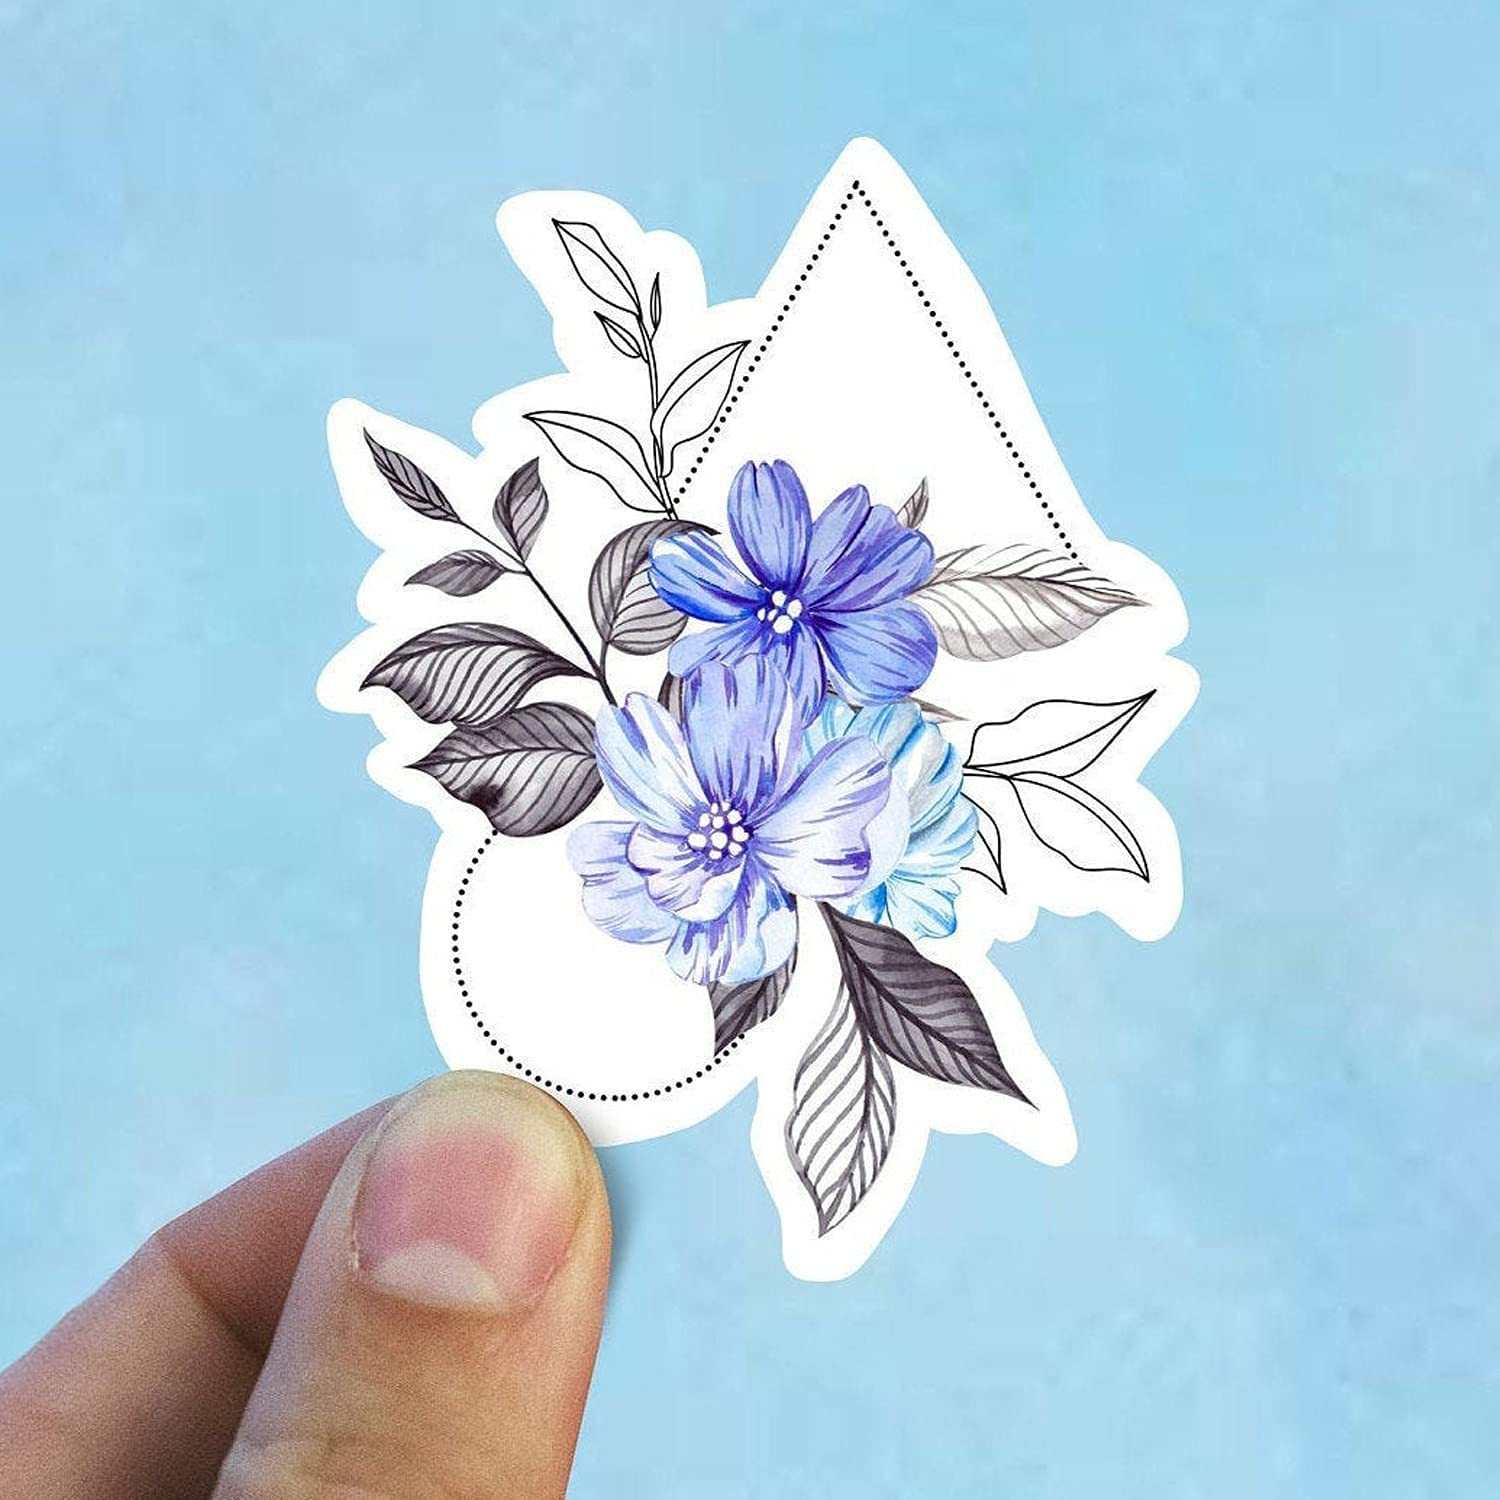 Blue Geometric Flowers Vinyl Superior Stickers Bottle Laptop Decal New life Water